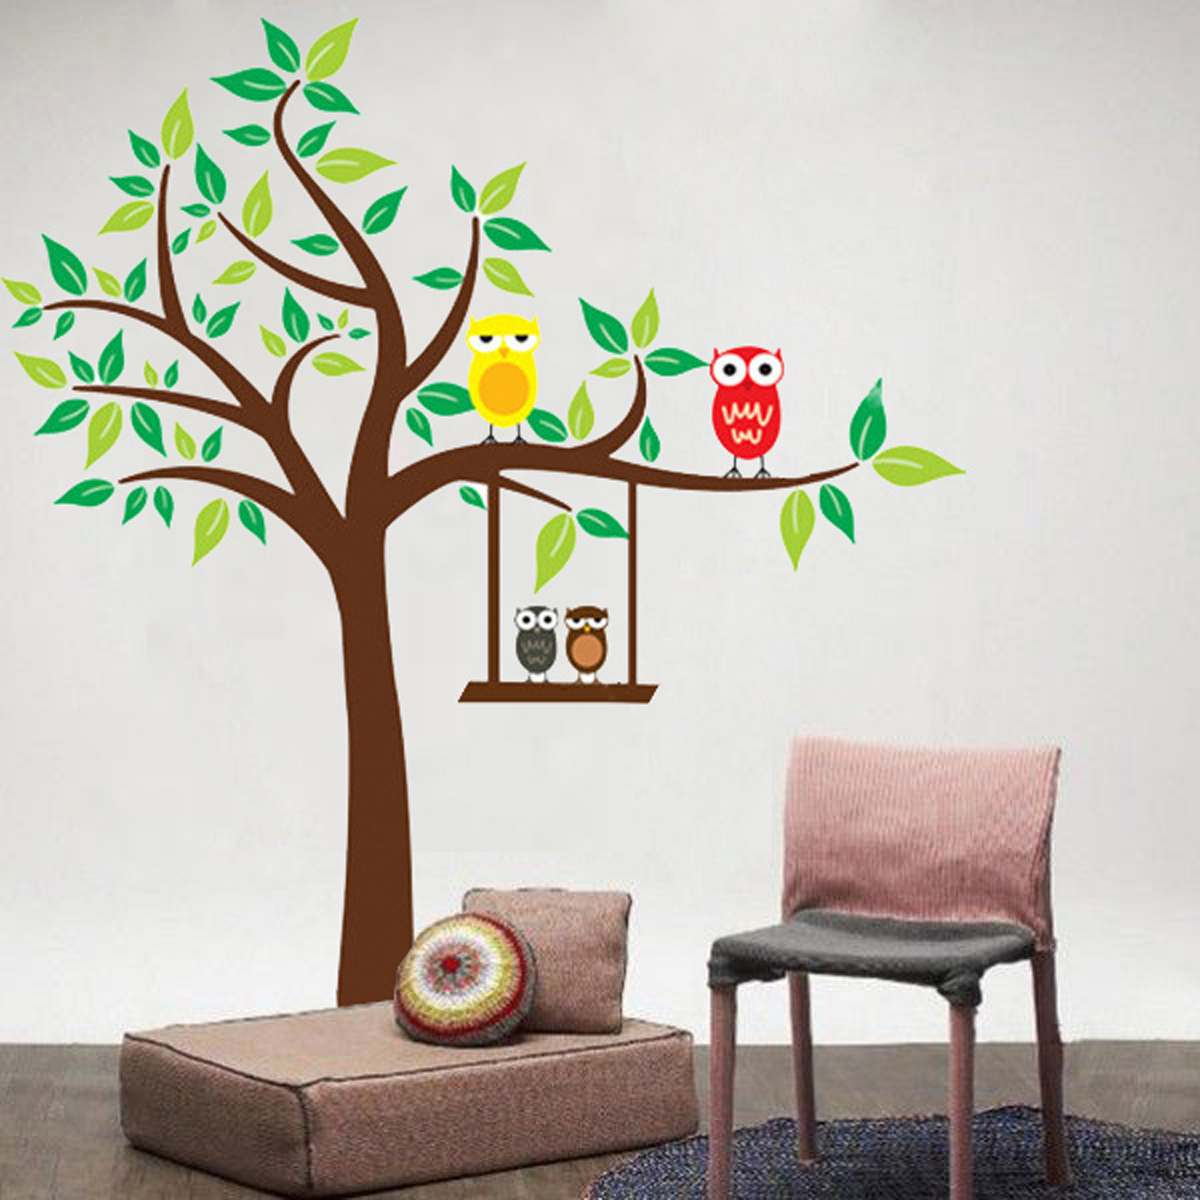 Dessin animal arbre sticker mural autocollant amovible for Peindre un dessin sur un mur